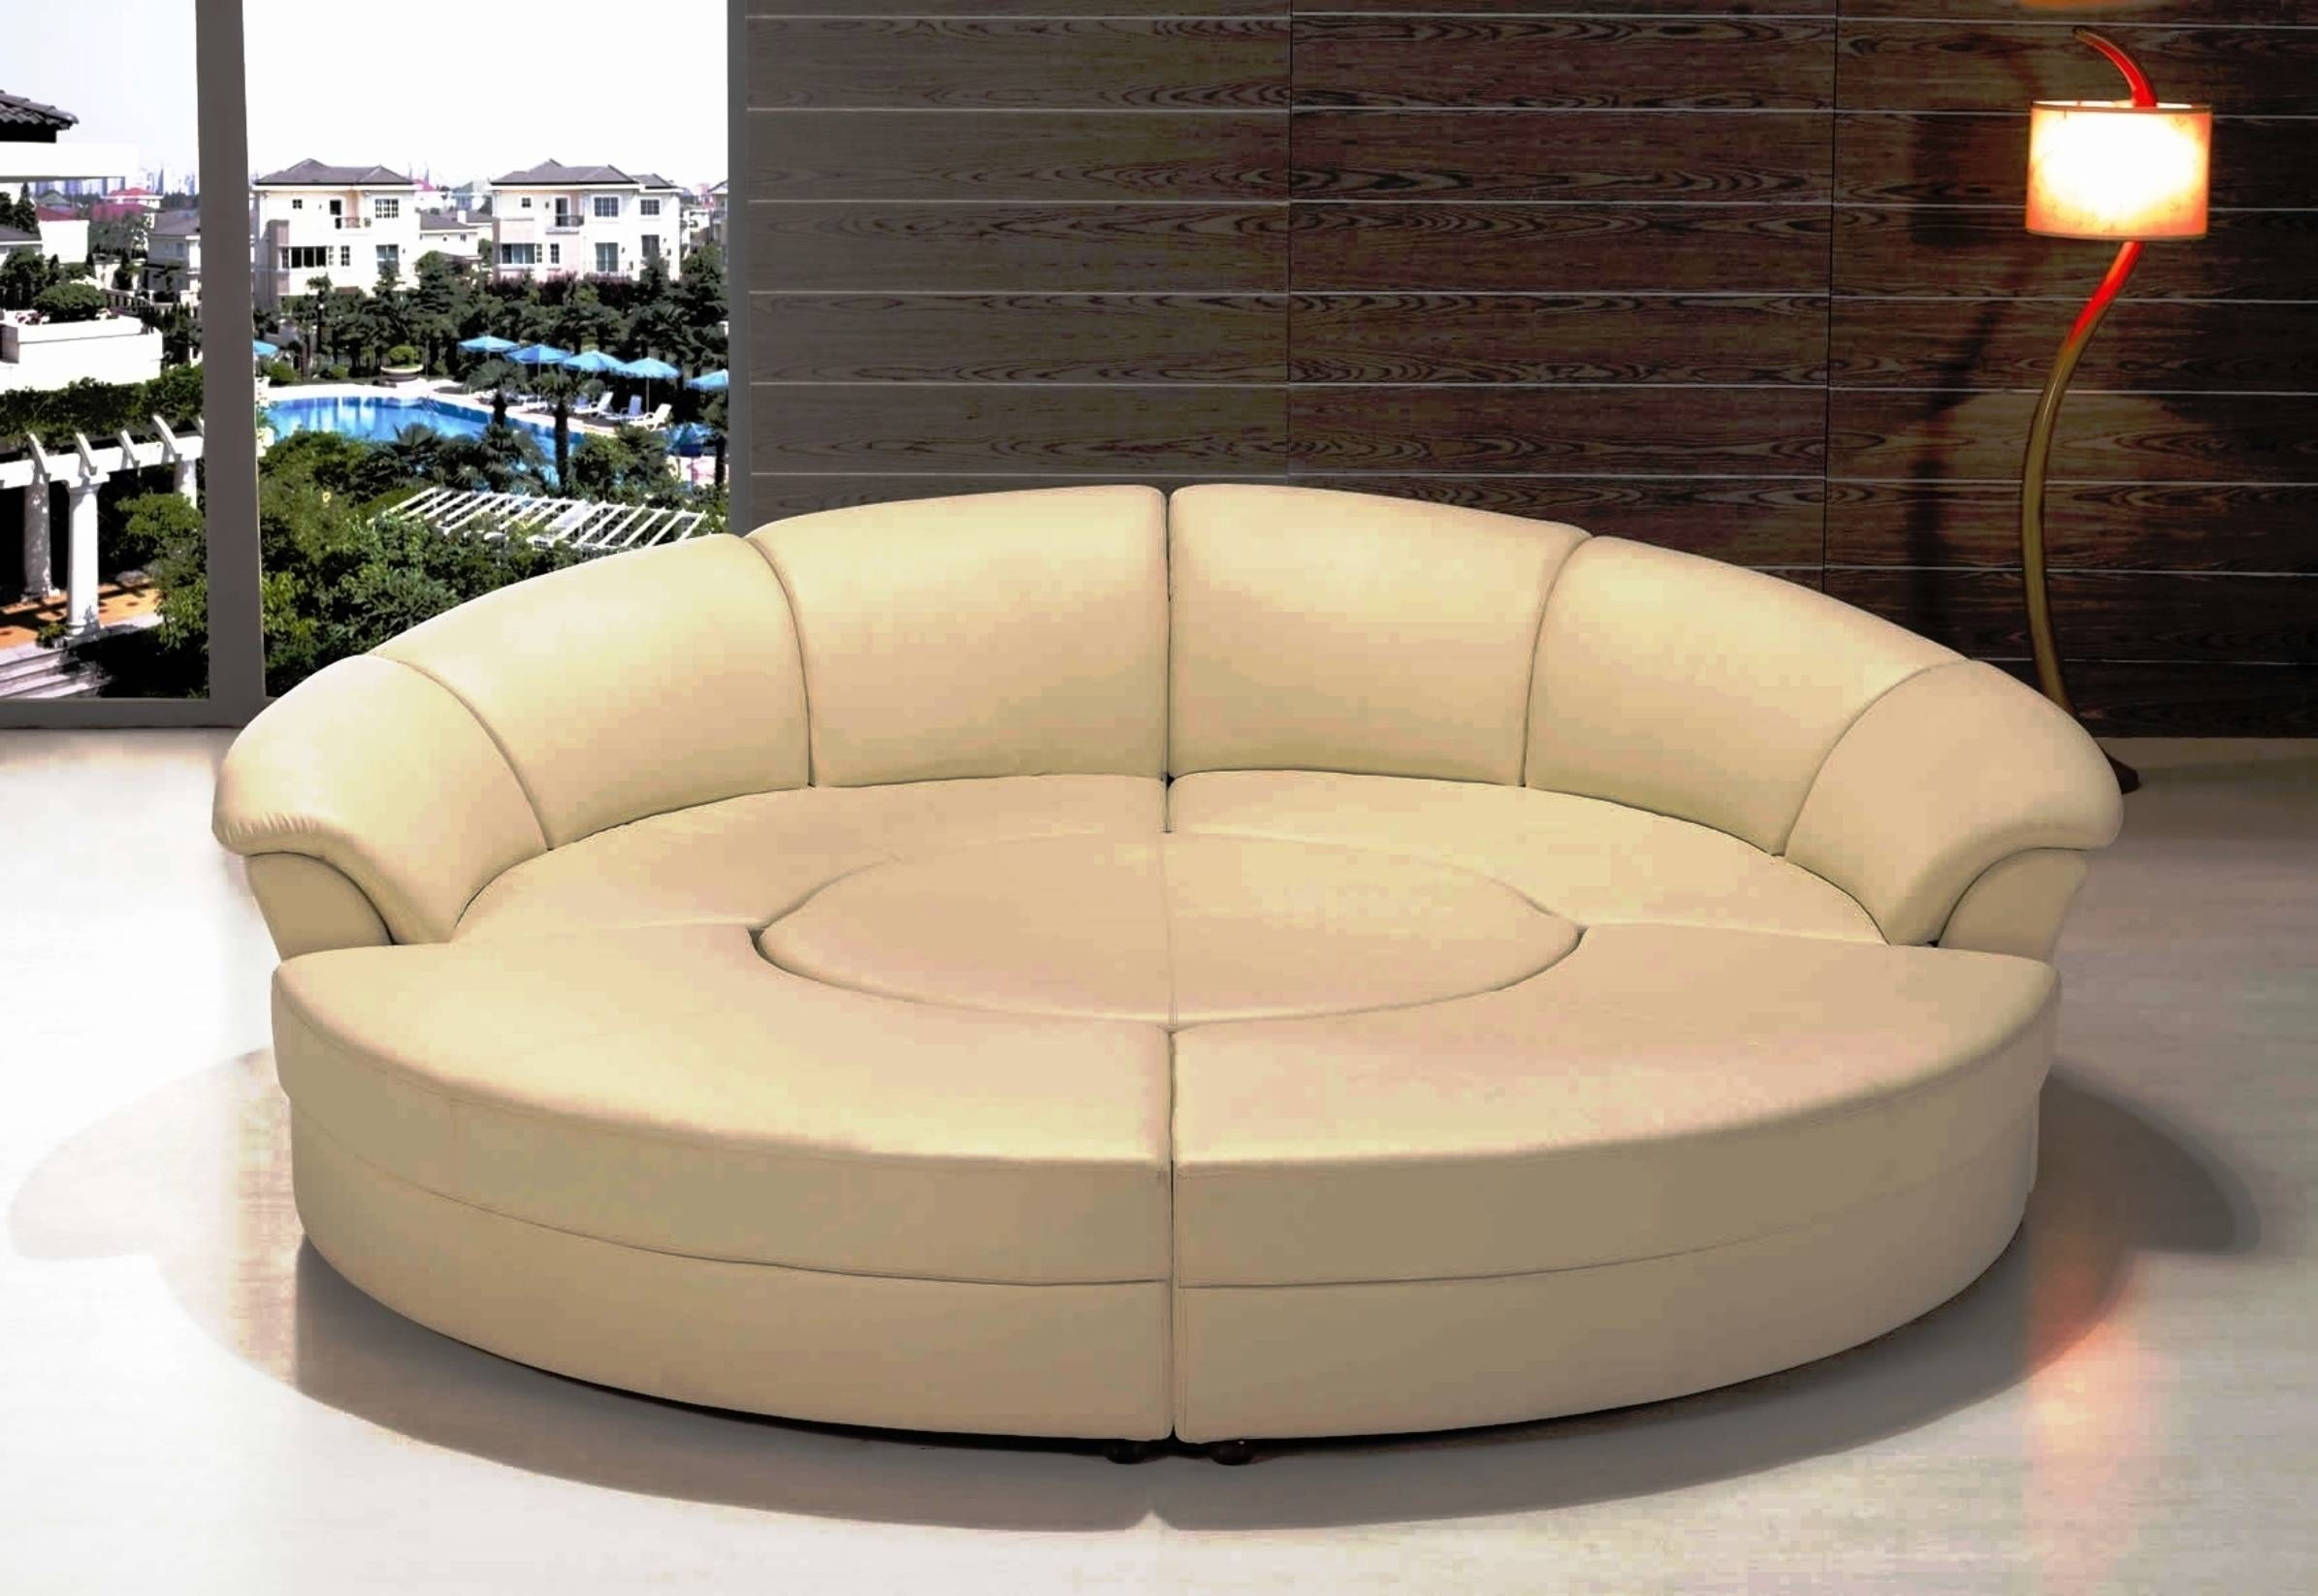 Exellent Round Sectional Sofa Bed Intended Decorating Ideas Regarding Semi Round Sectional Sofas (View 3 of 15)